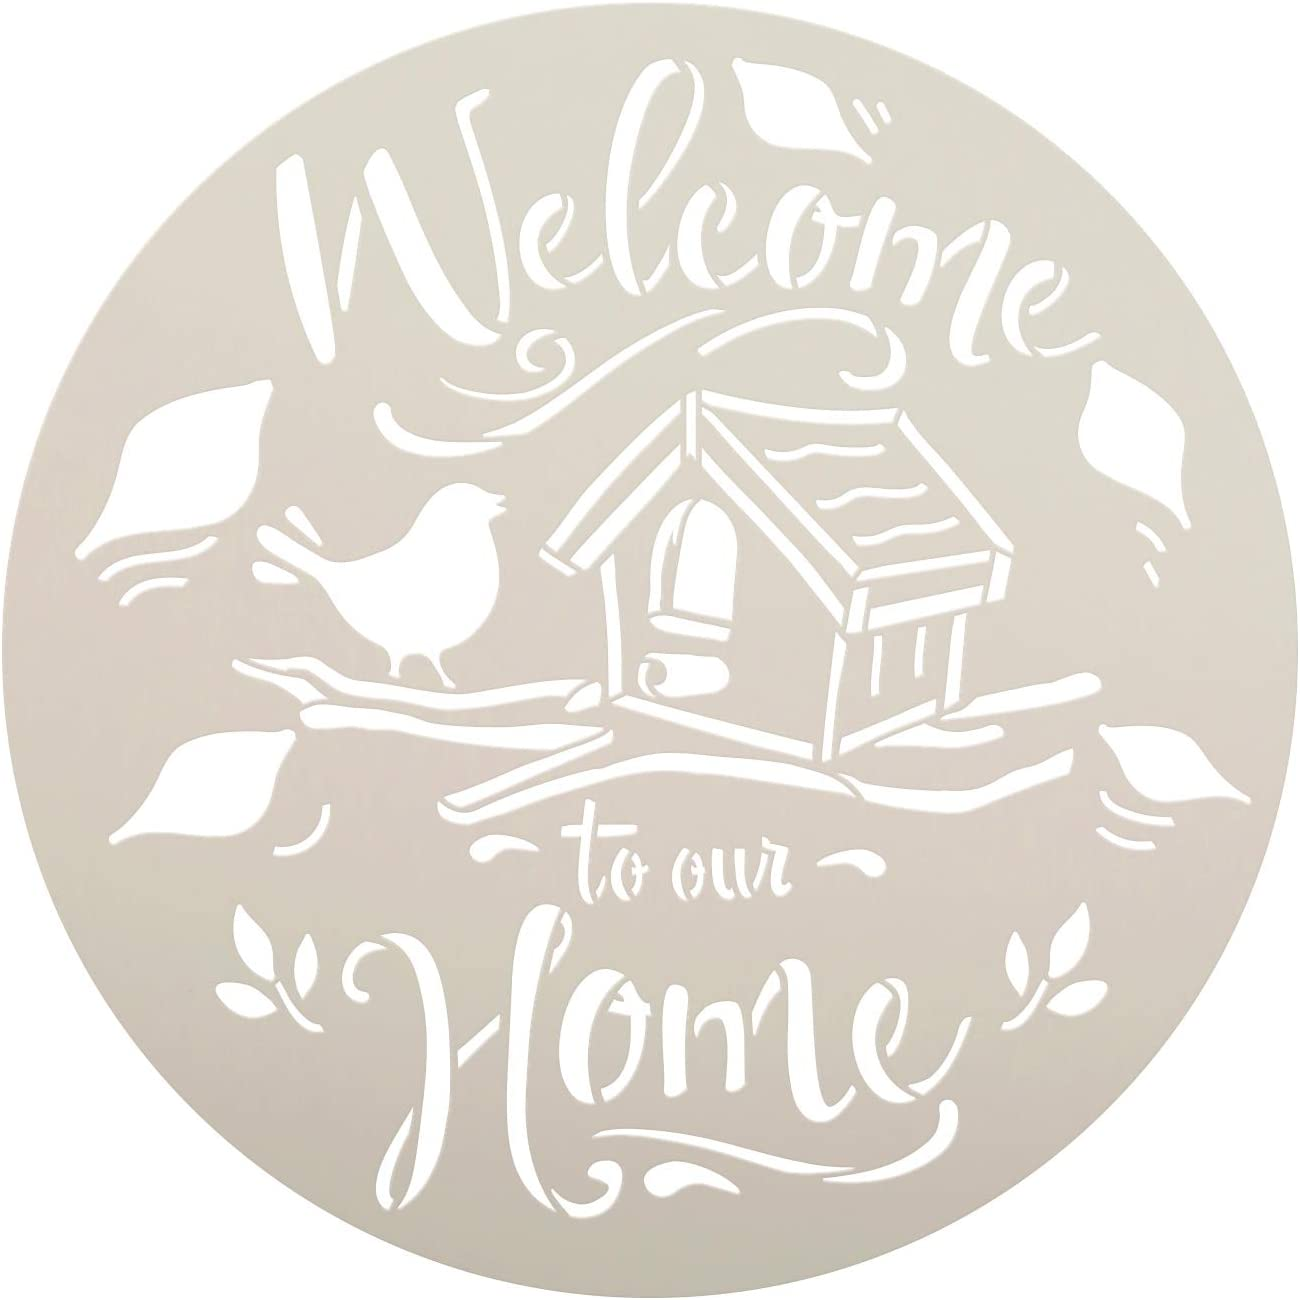 Welcome to Our Home Round Stencil with Bird by StudioR12 | DIY Fall Autumn Farmhouse Home Decor | Craft & Paint Wood Sign | Select Size (9 x 9 inch)